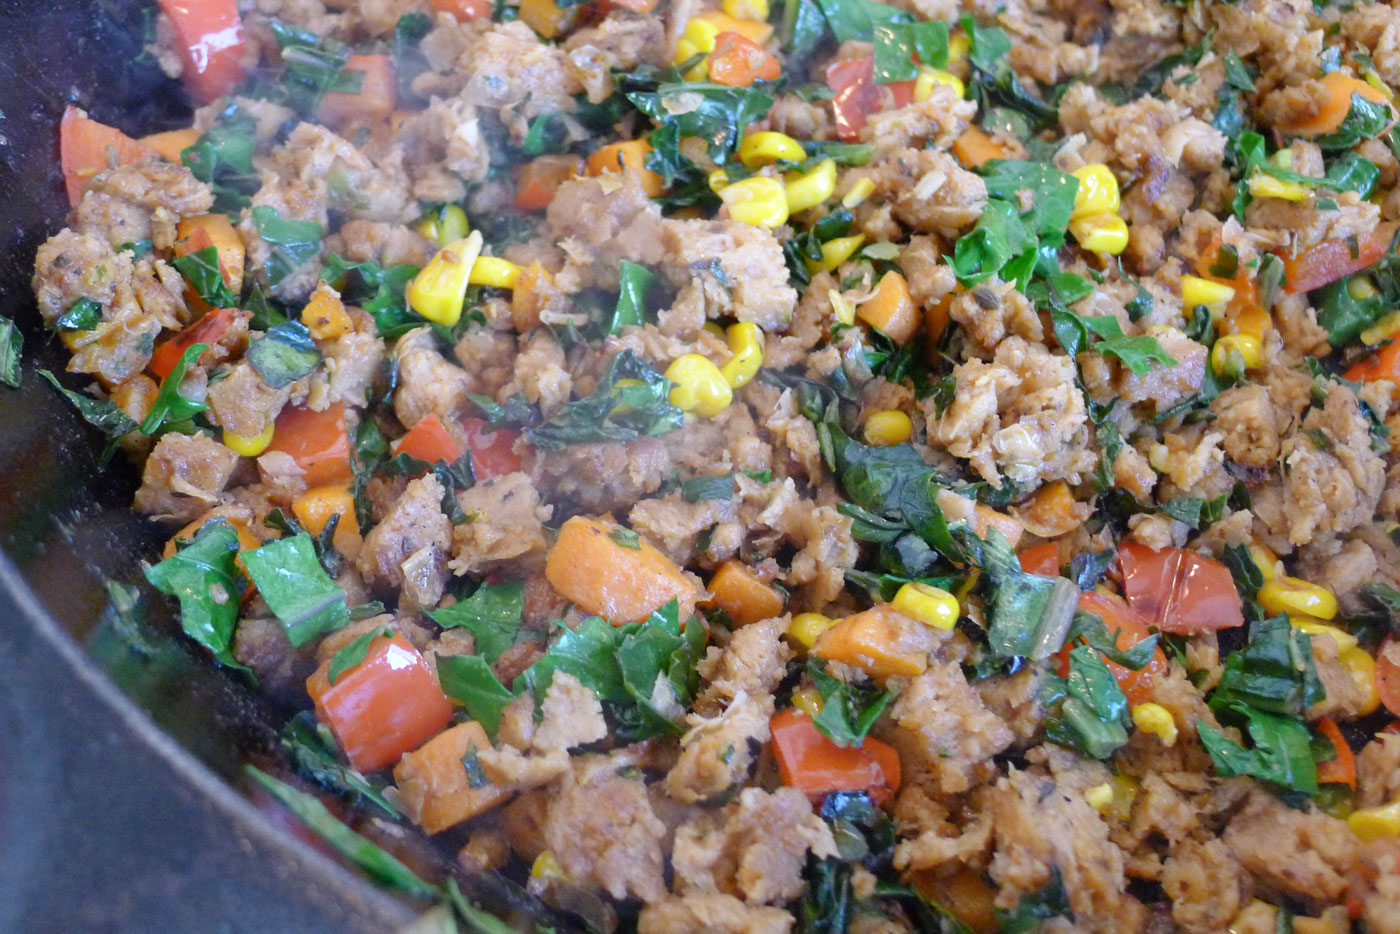 veggie sausage skillet with carrots, onions, corn and kale